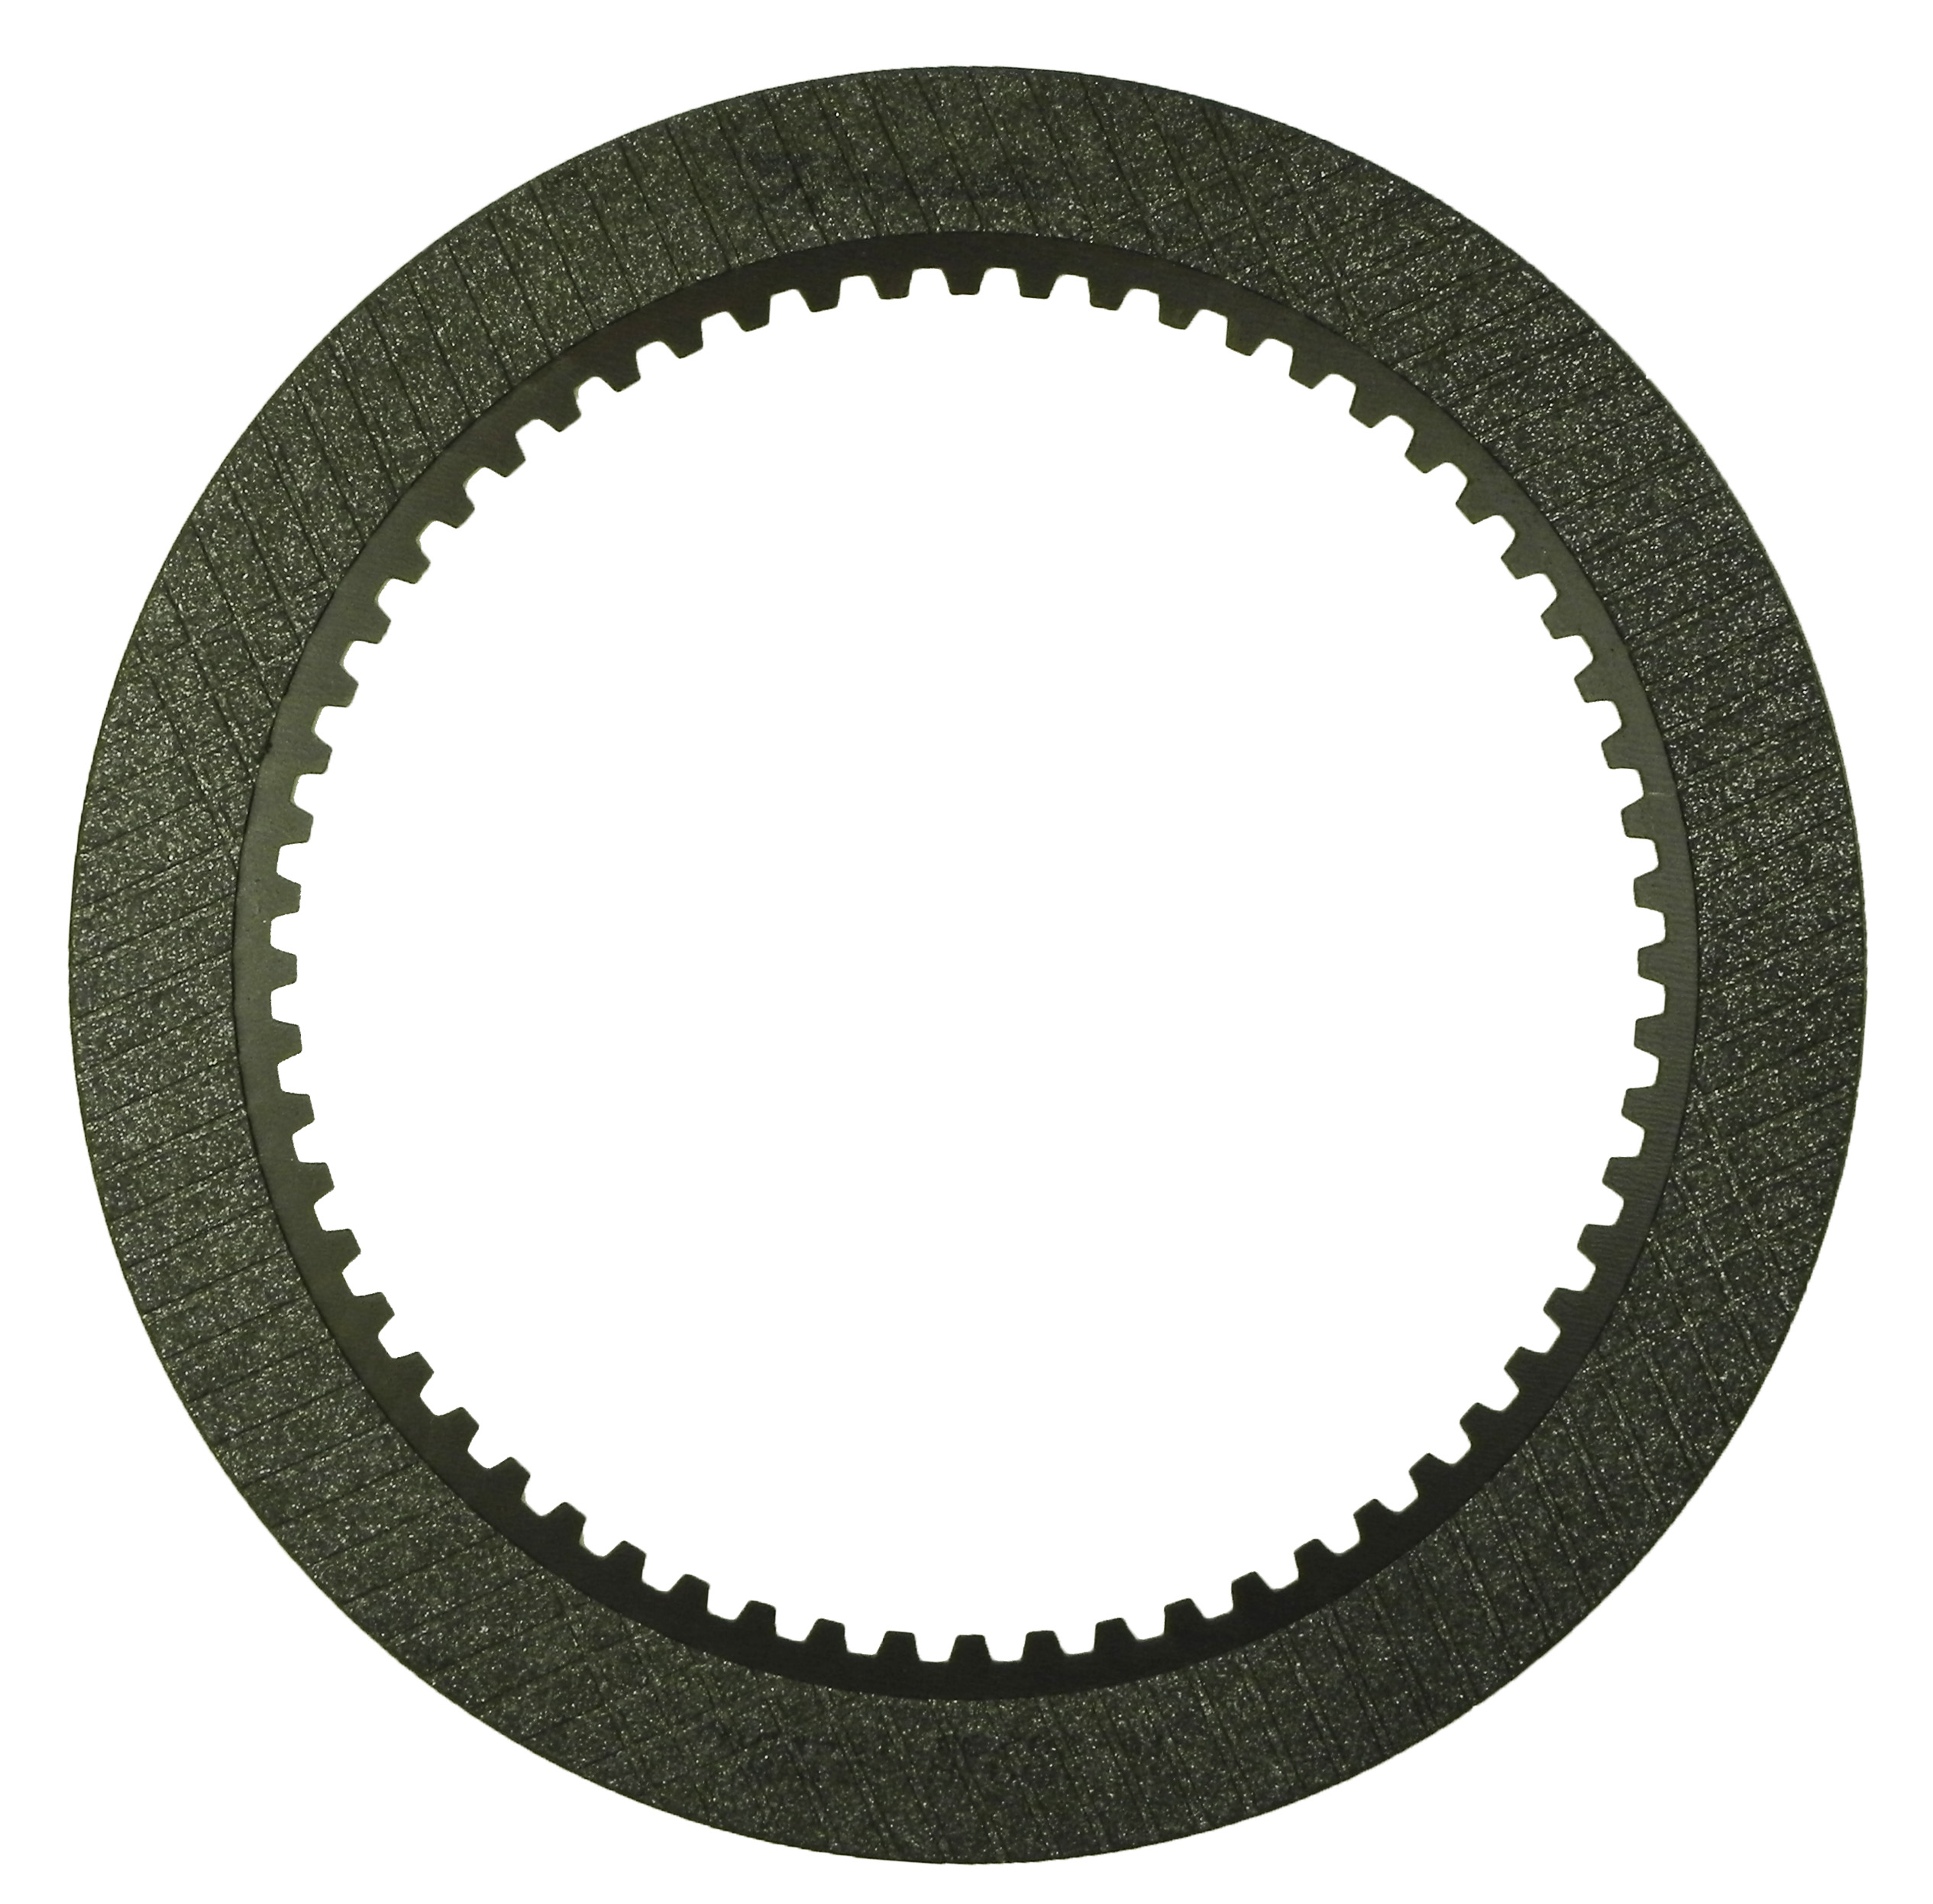 R809981 | 1970-ON Friction Clutch Plate Graphitic 1st, Reverse Graphitic AT540